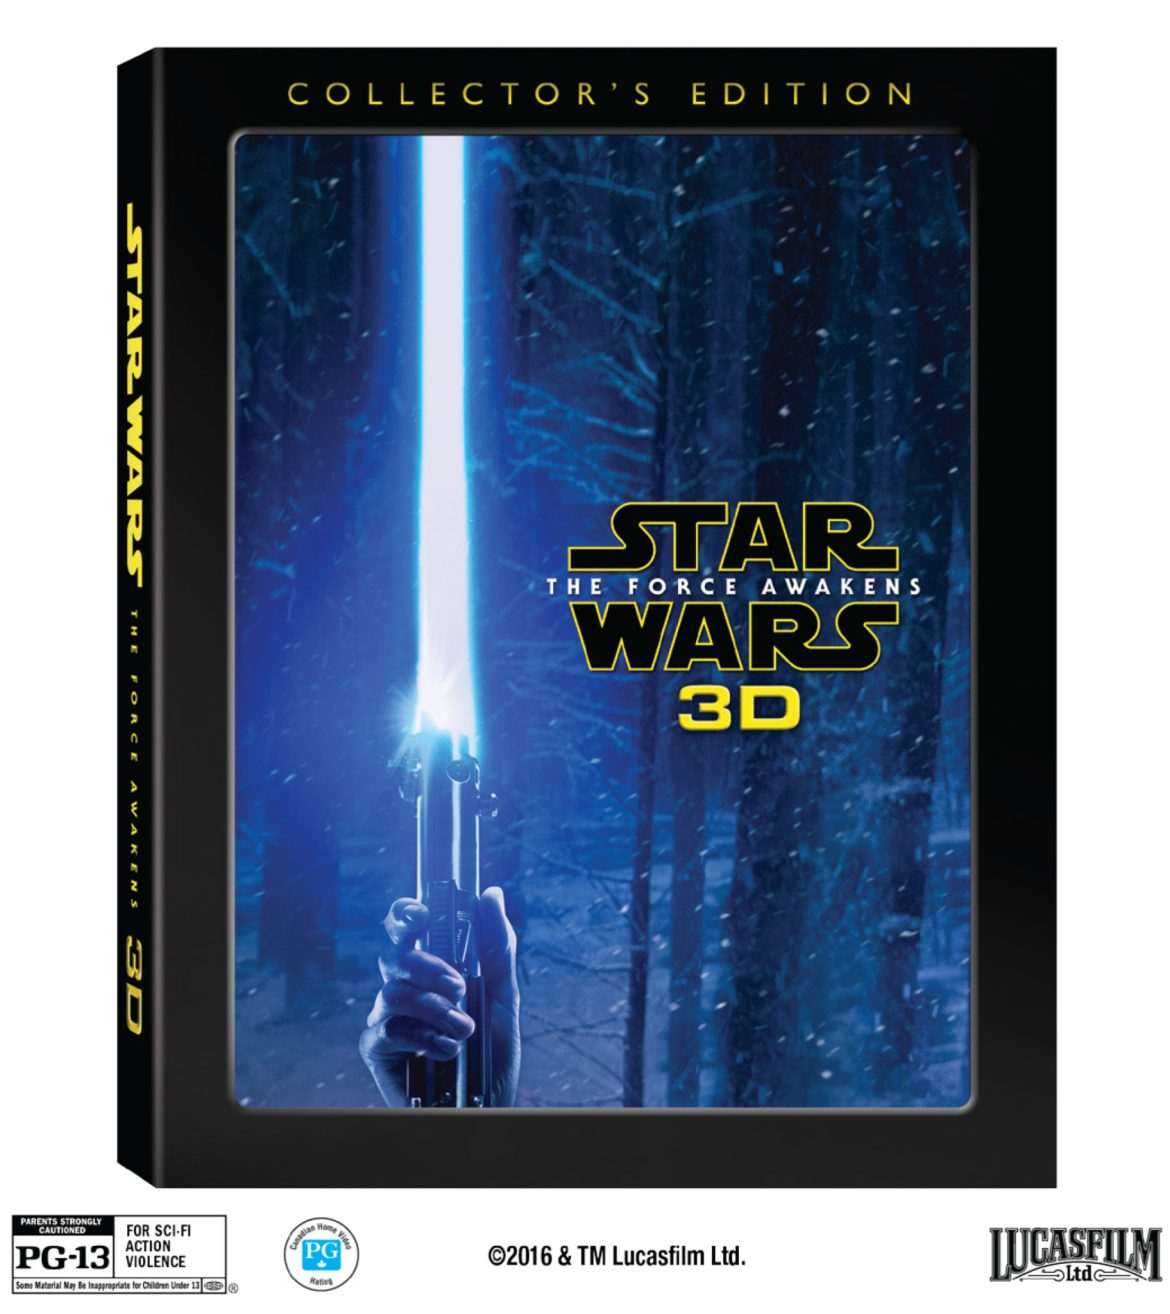 """*UPDATE: """"Star Wars: The Force Awakens"""" 3D Collector's Edition is coming this November"""